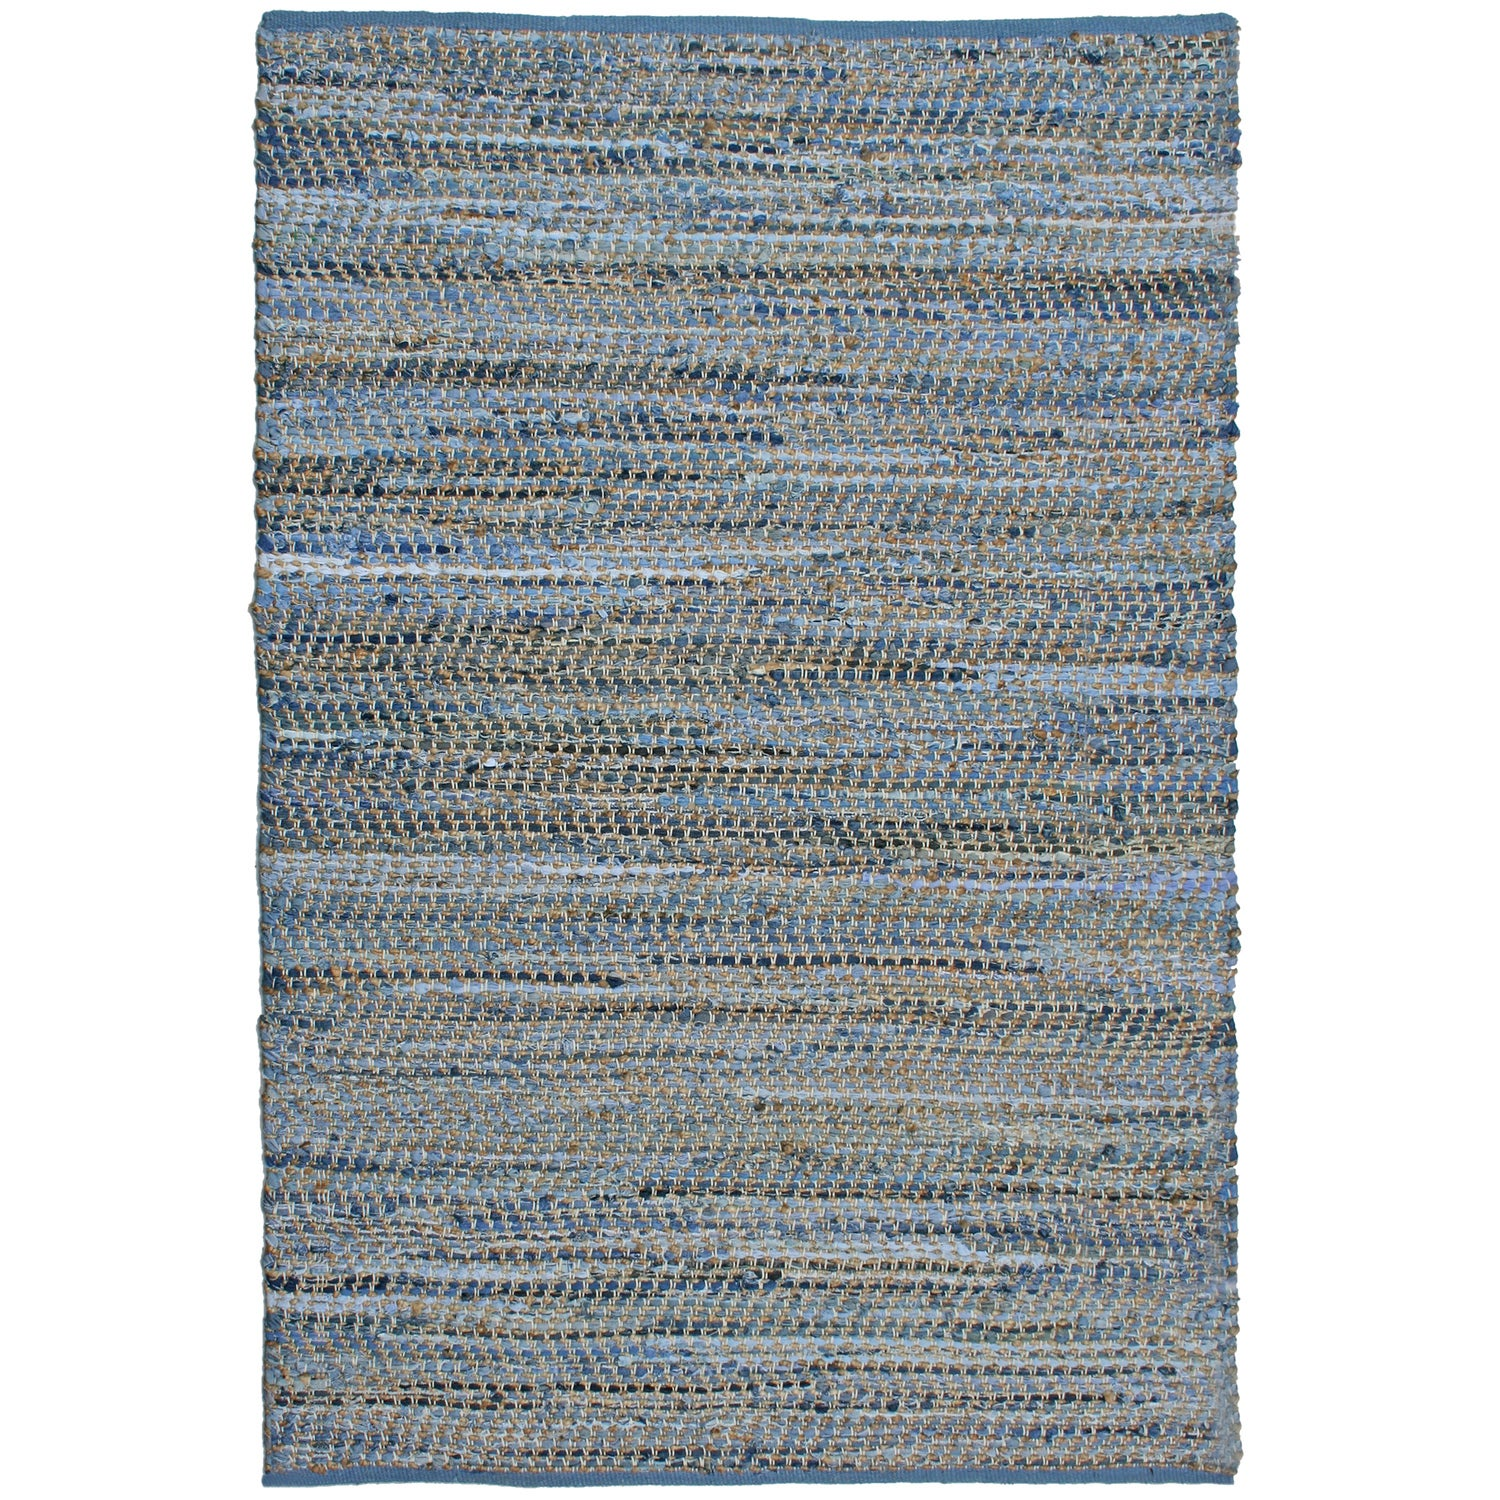 Blue Jeans Hand Woven Denim Hemp Area Rug 9 X 12 Free Shipping Today 15437147